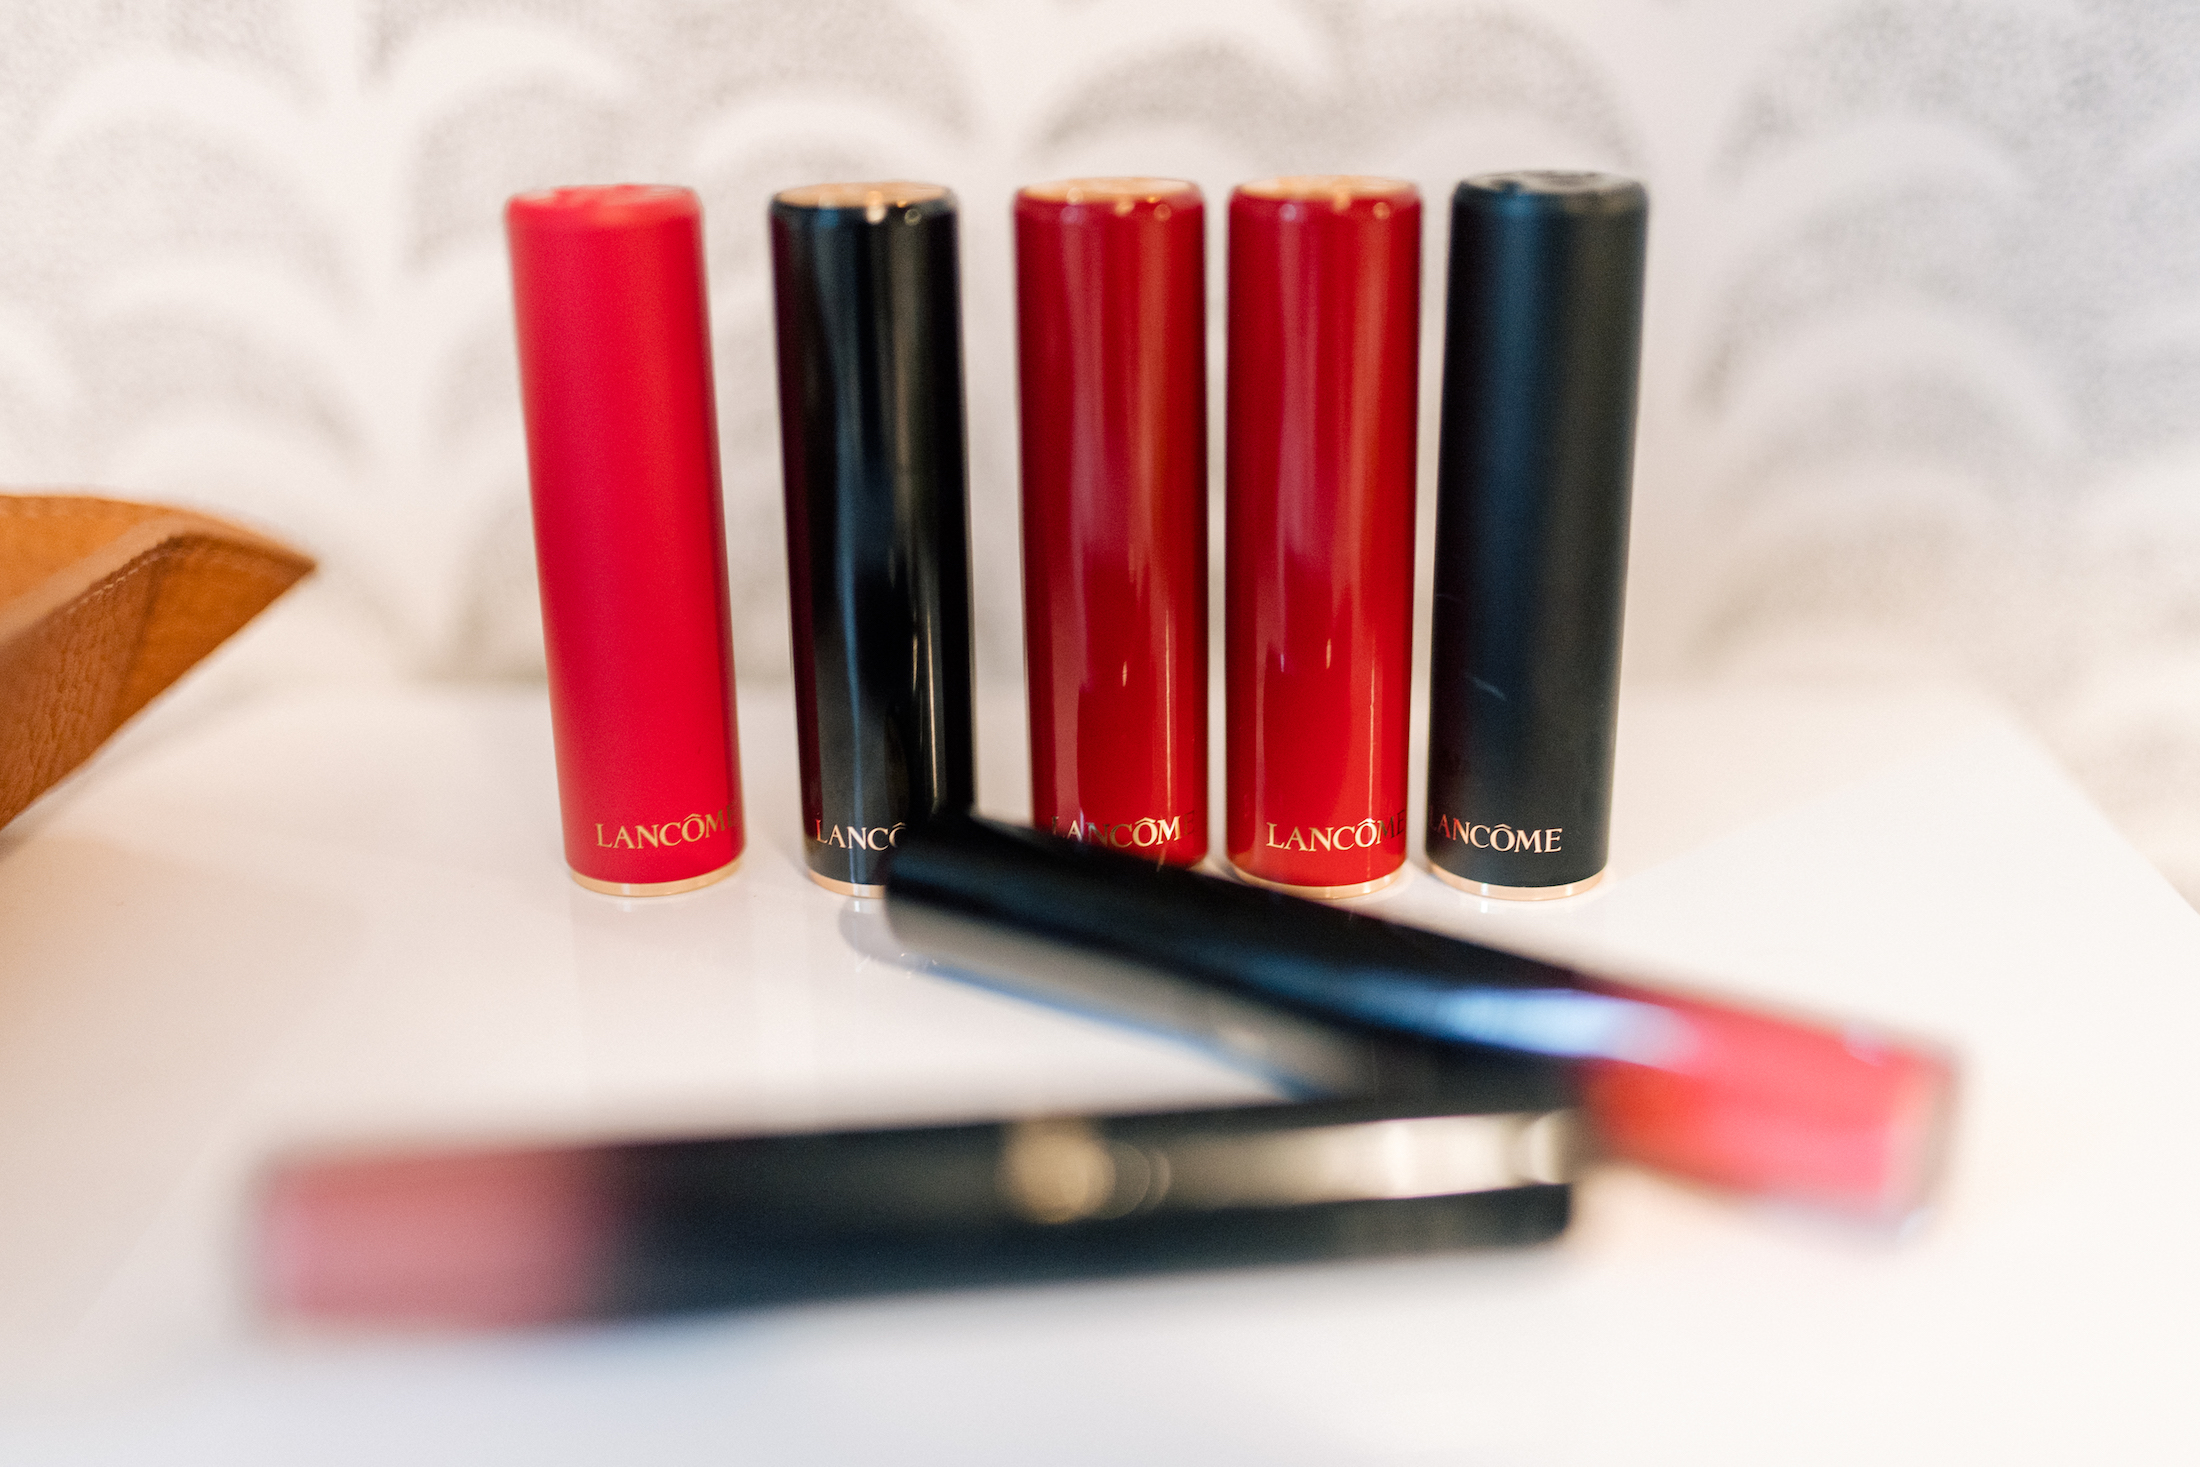 Lancôme's L'Absolu Rouge Collection